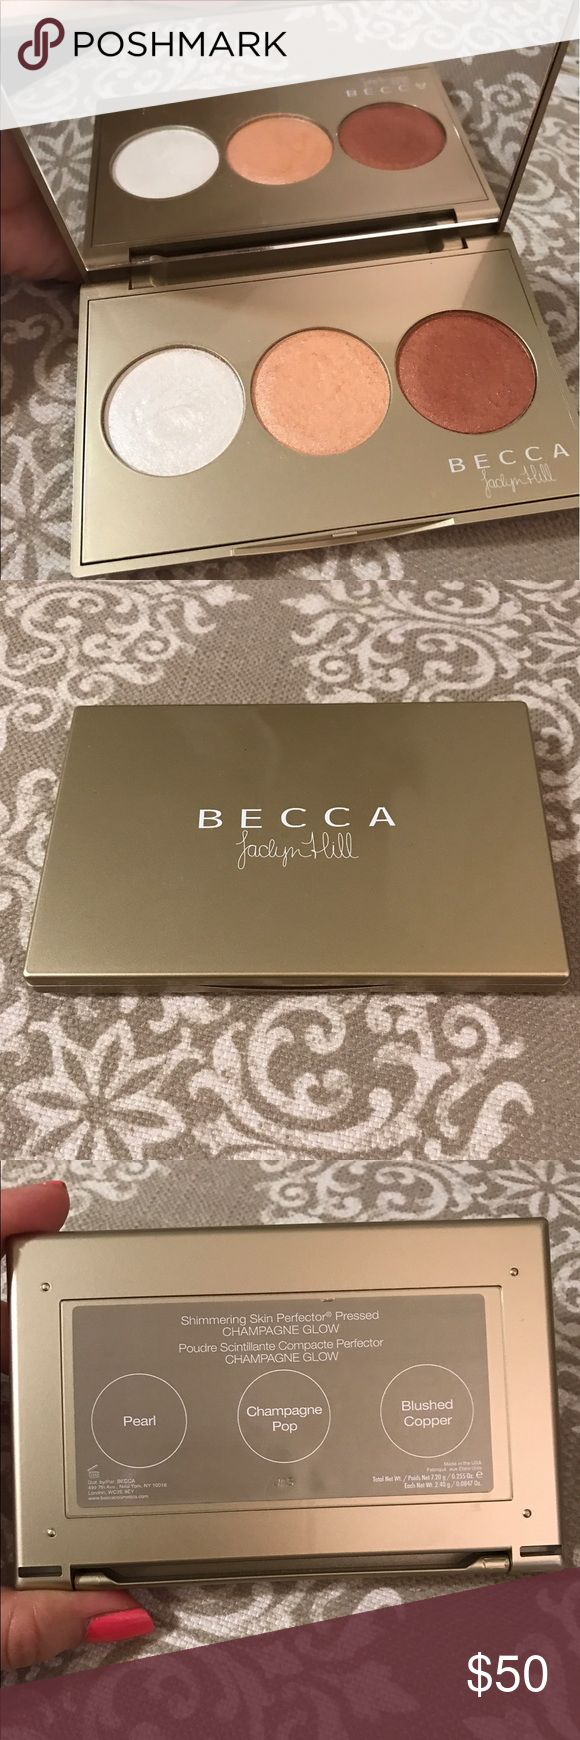 Becca x Jaclyn Hill Champagne Glow Palette ❤️   100% Guaranteed Authentic!     I Ship the Same or Next Day ❌   NO TRADES ❗️❗️❗️  • Authentic Becca highlighter palette purchased from Sephora. No longer being sold. Shades include Pearl, Champagne Pop, and Blushed Copper. Only used a few times. Will package carefully to not break. BECCA Makeup Luminizer